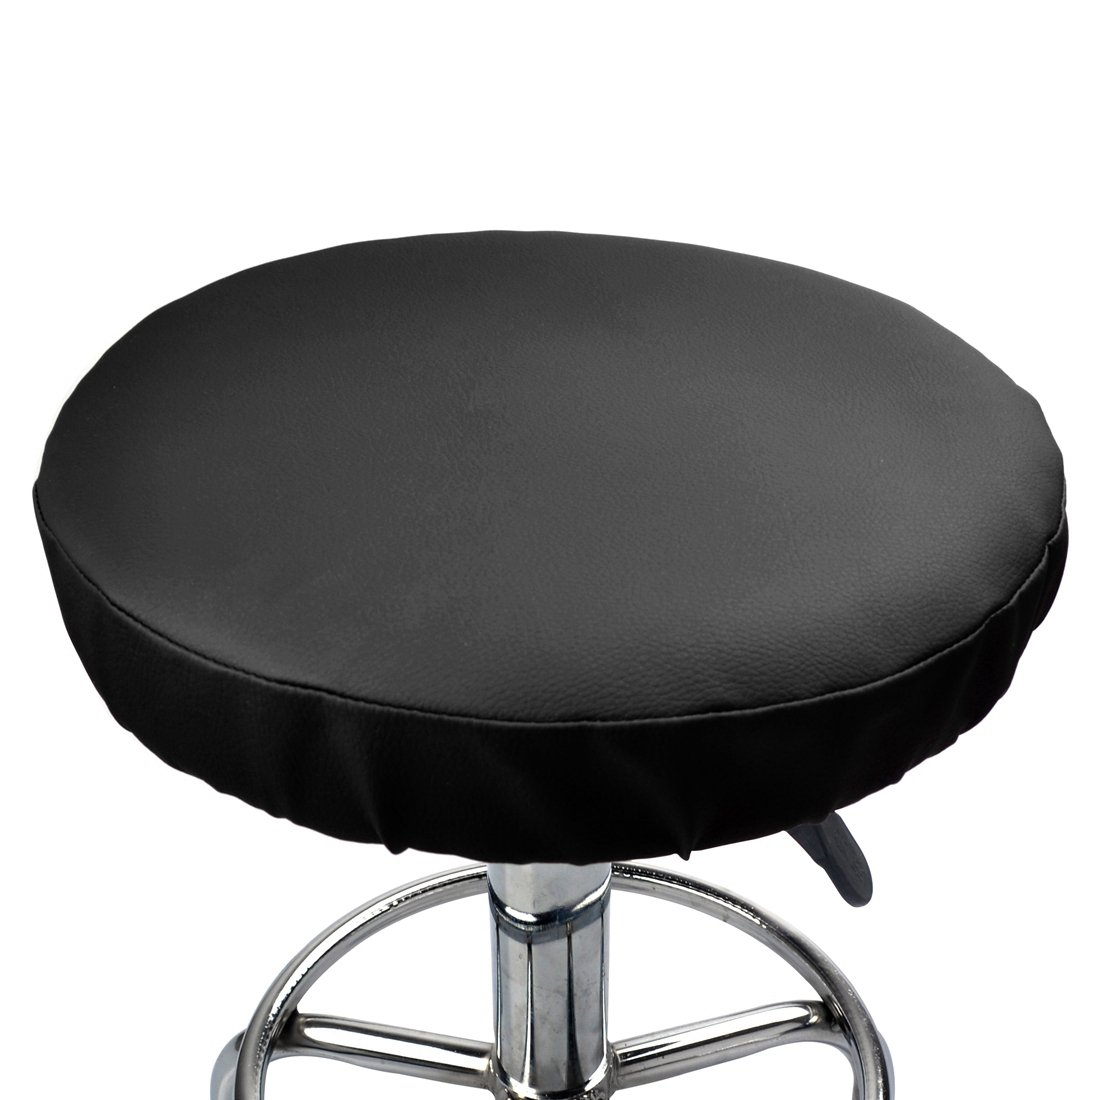 Jinshou 2PCS Round Bar Stool Cover Faux Leather Seat Cushion Home Office Chair Pad Protector Cover Slipcover 11.8inch